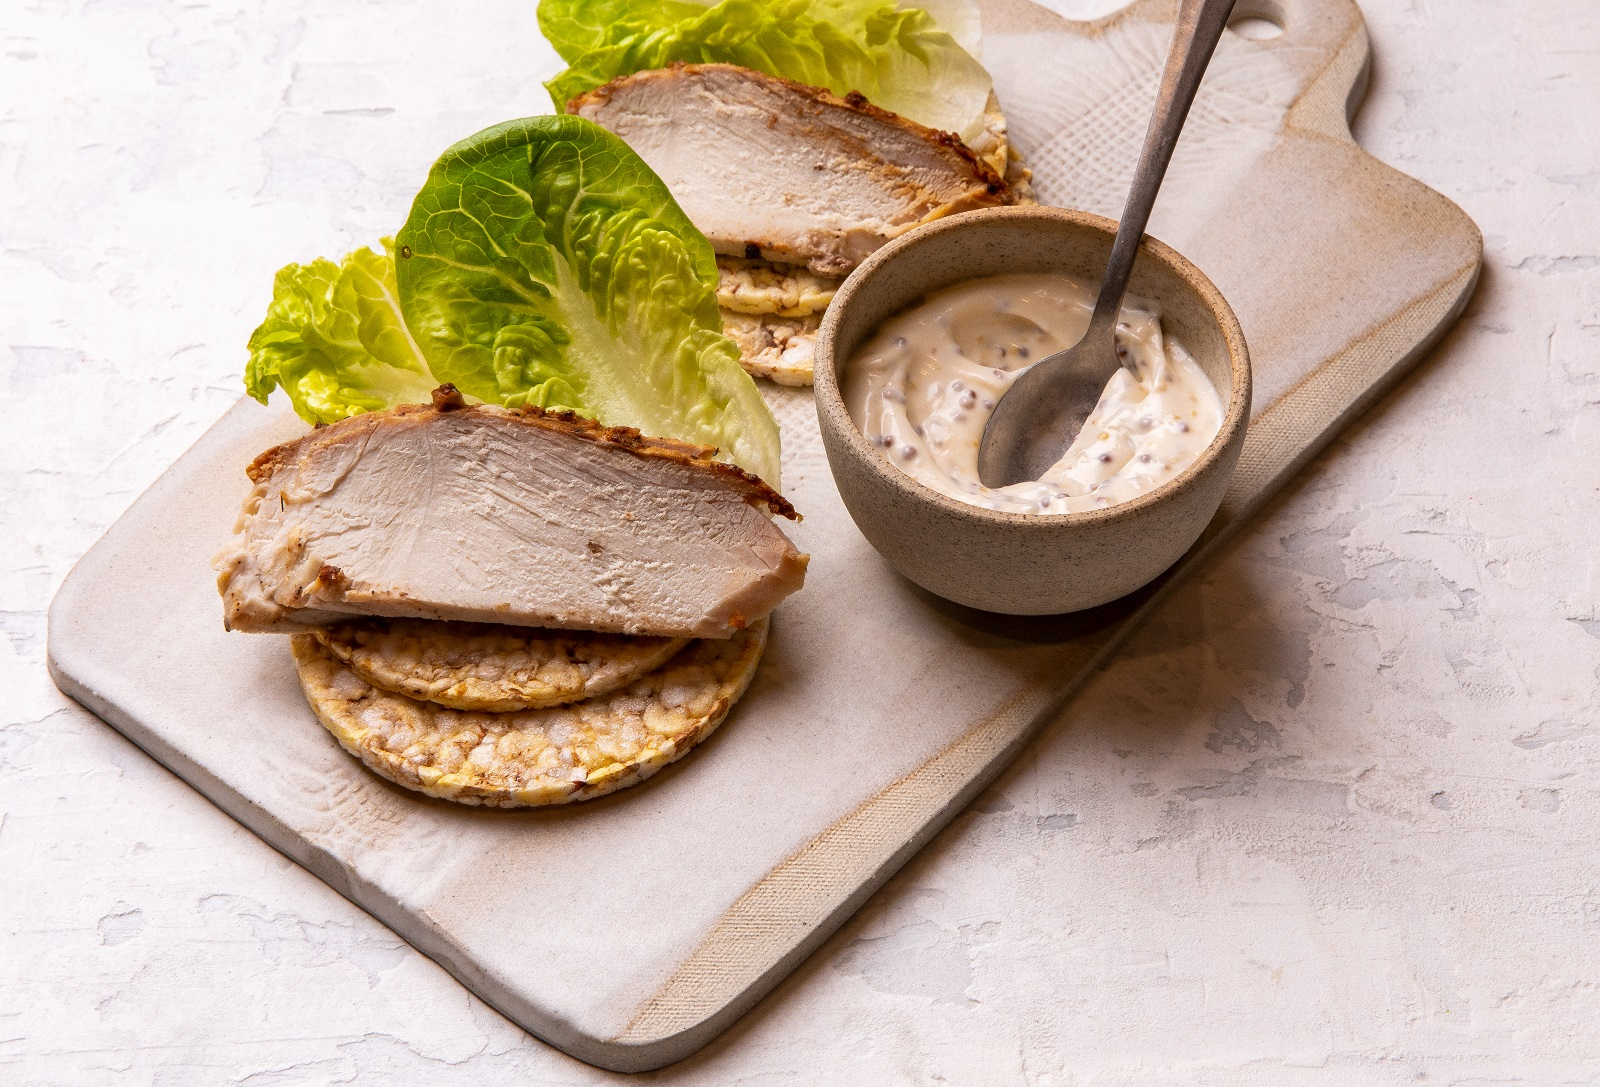 Left-over Roast Pork, Mayo, Seeded Mustard & Lettuce on CORN THINS slices